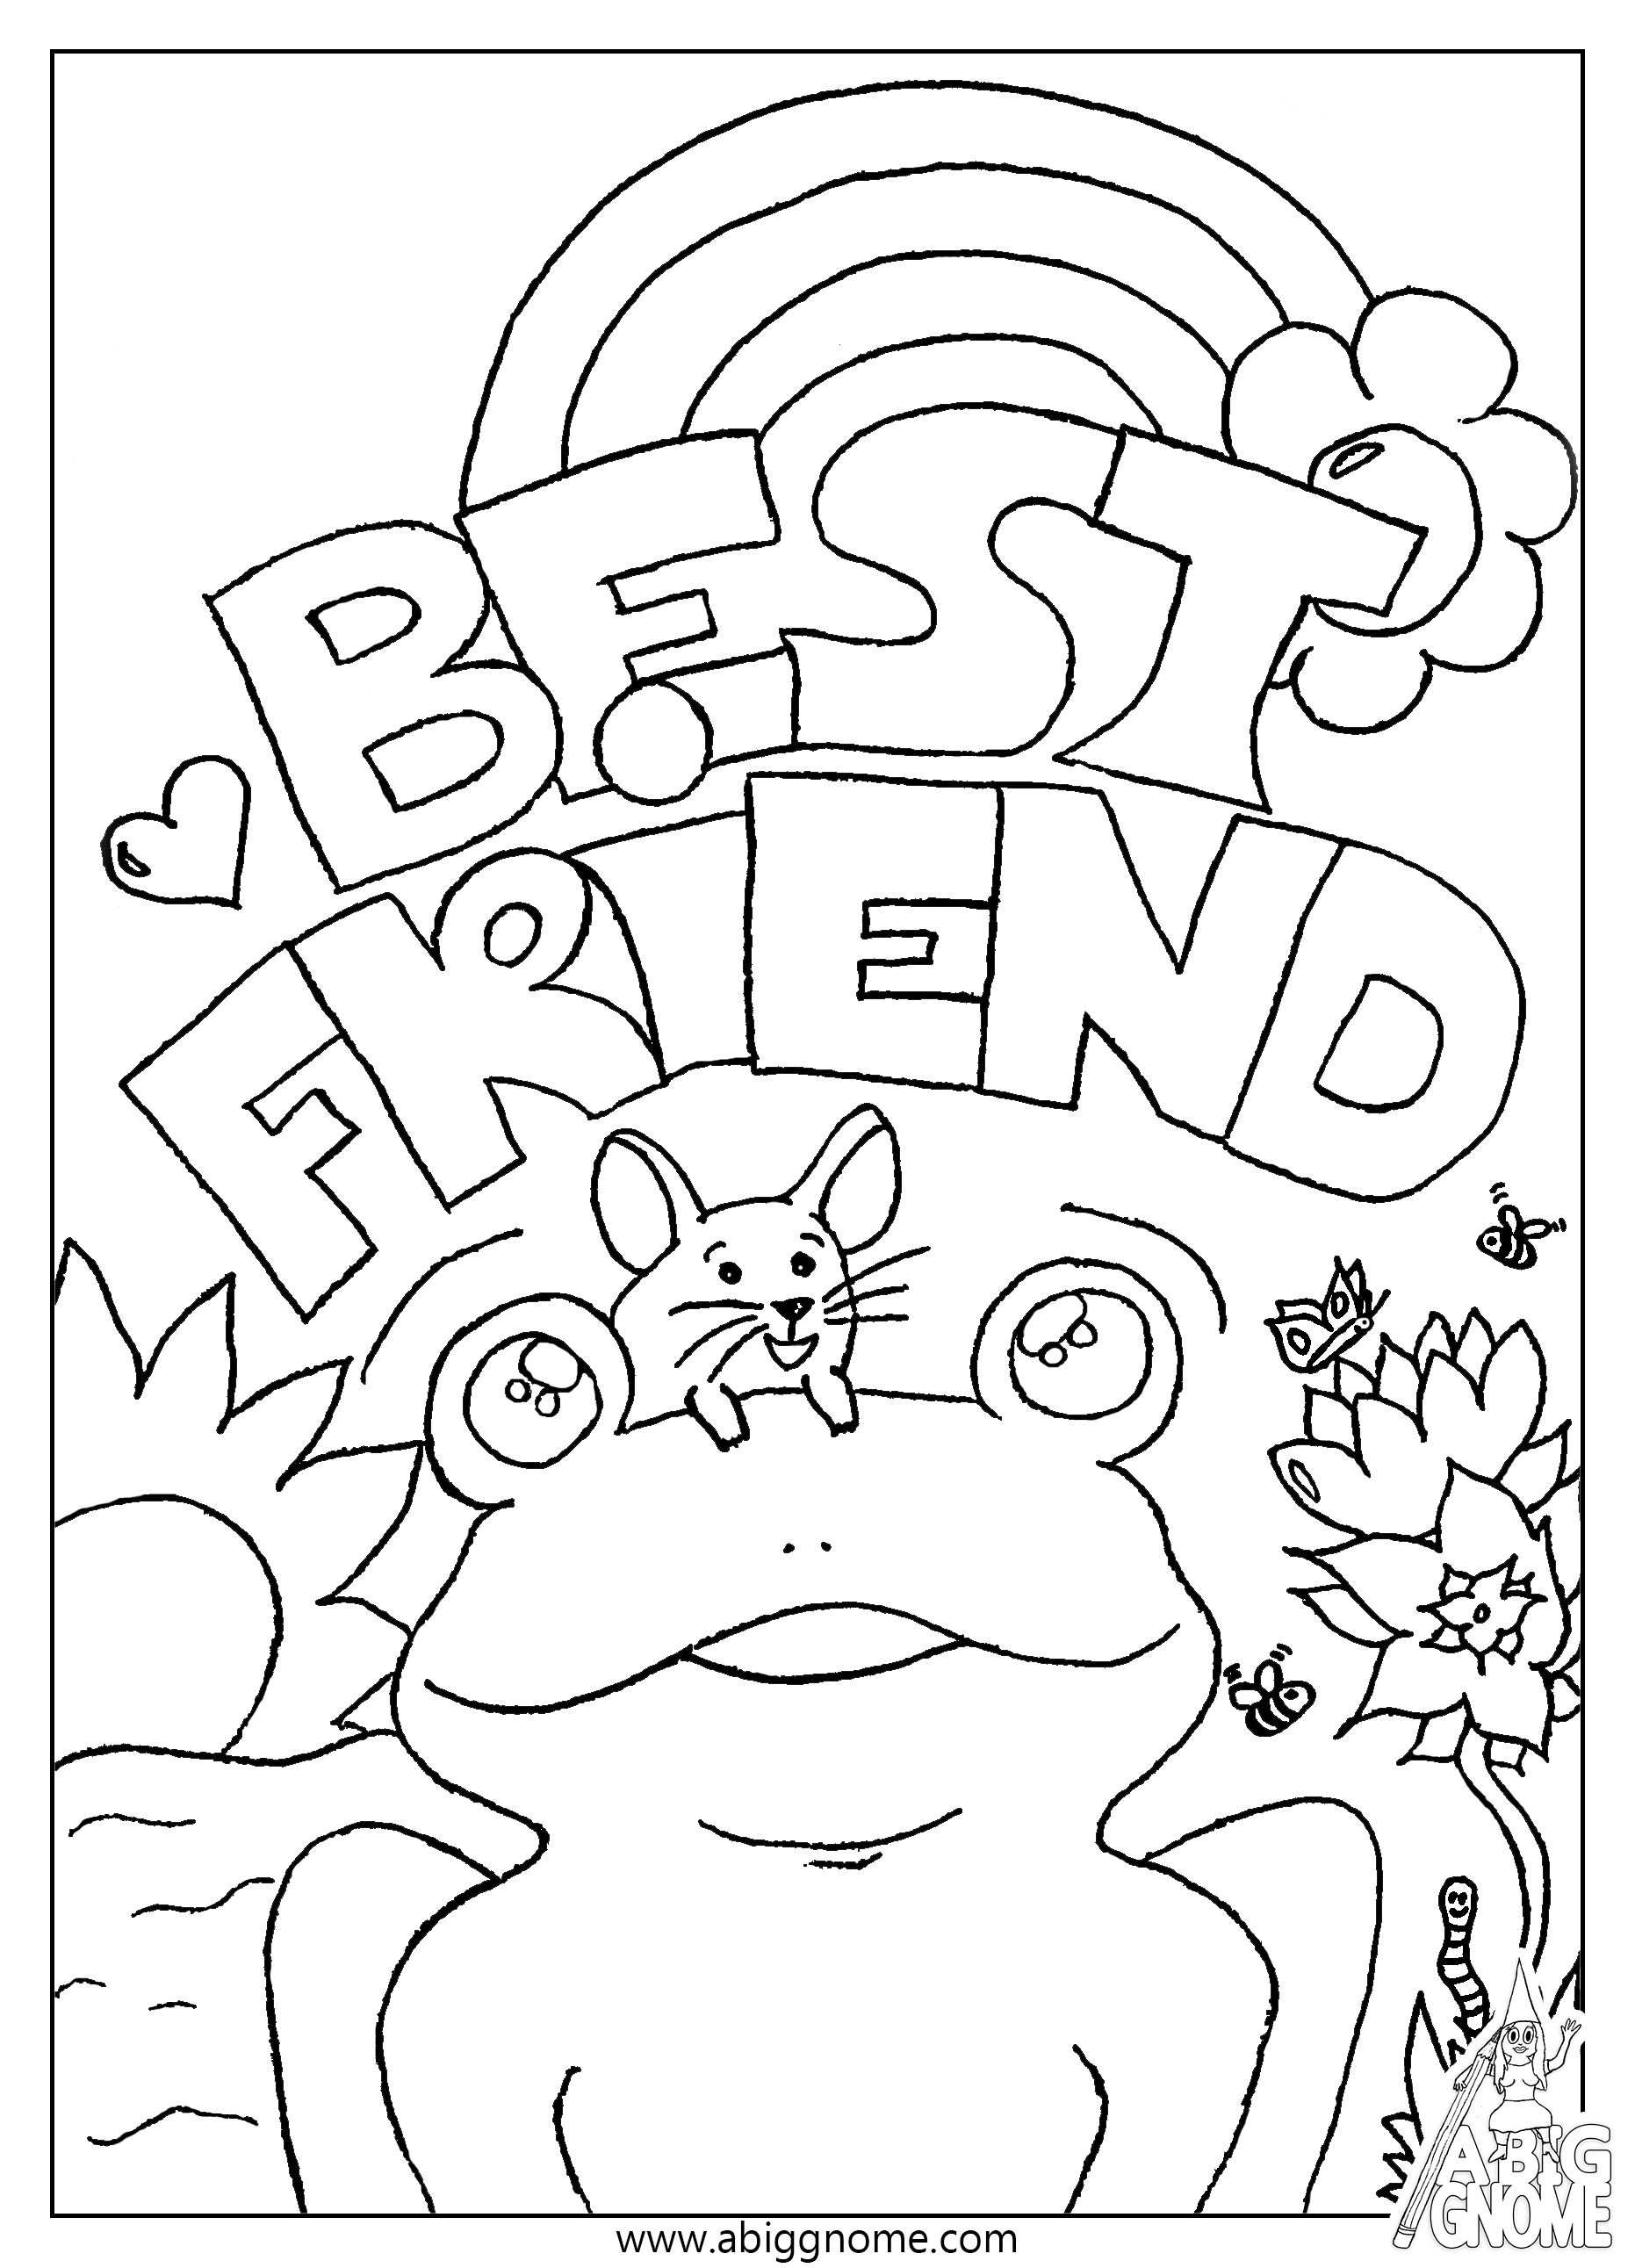 Kleurplaten With Images Coloring Pages Cute Coloring Pages